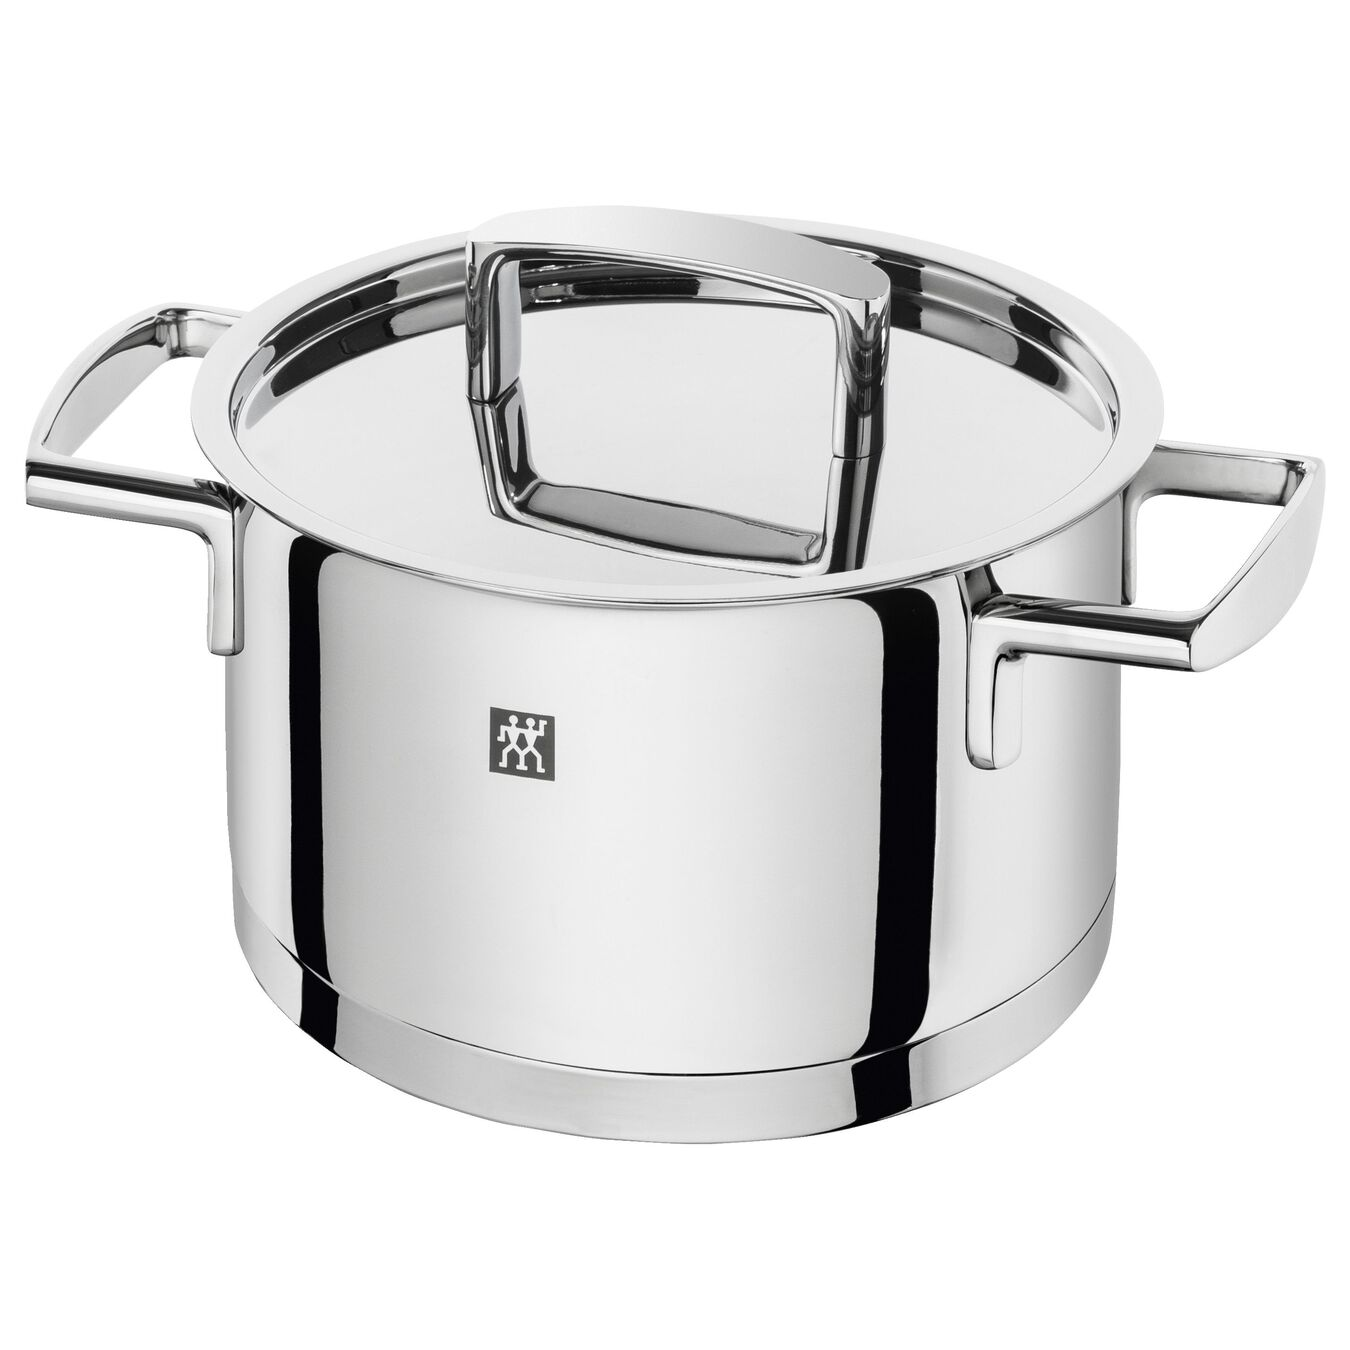 Ensemble de casseroles 5-pcs, Inox 18/10,,large 6